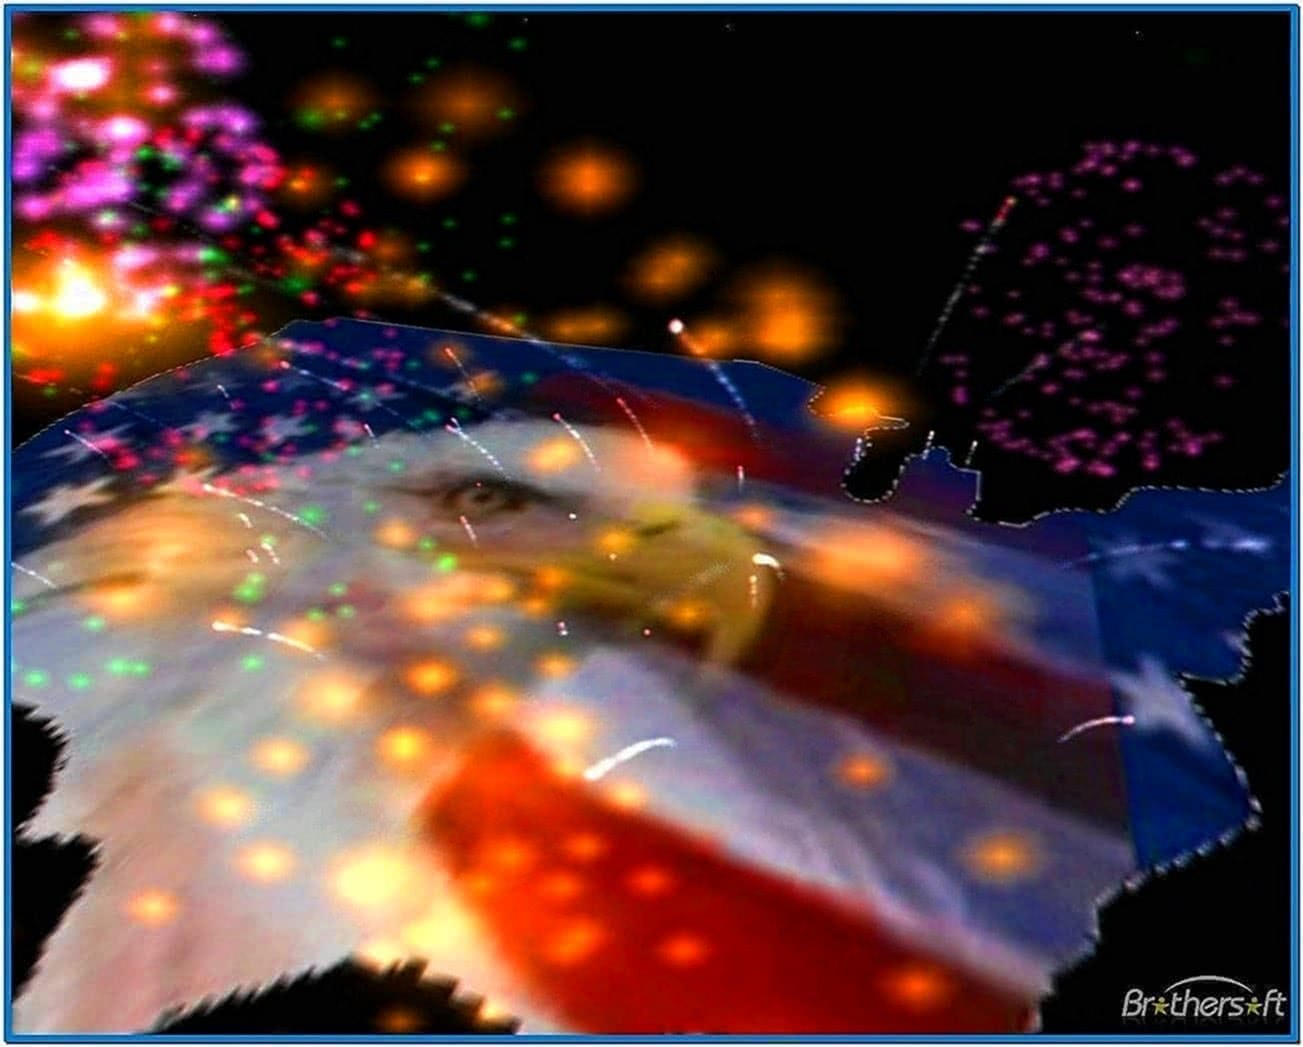 3D Animated Fireworks Screensaver